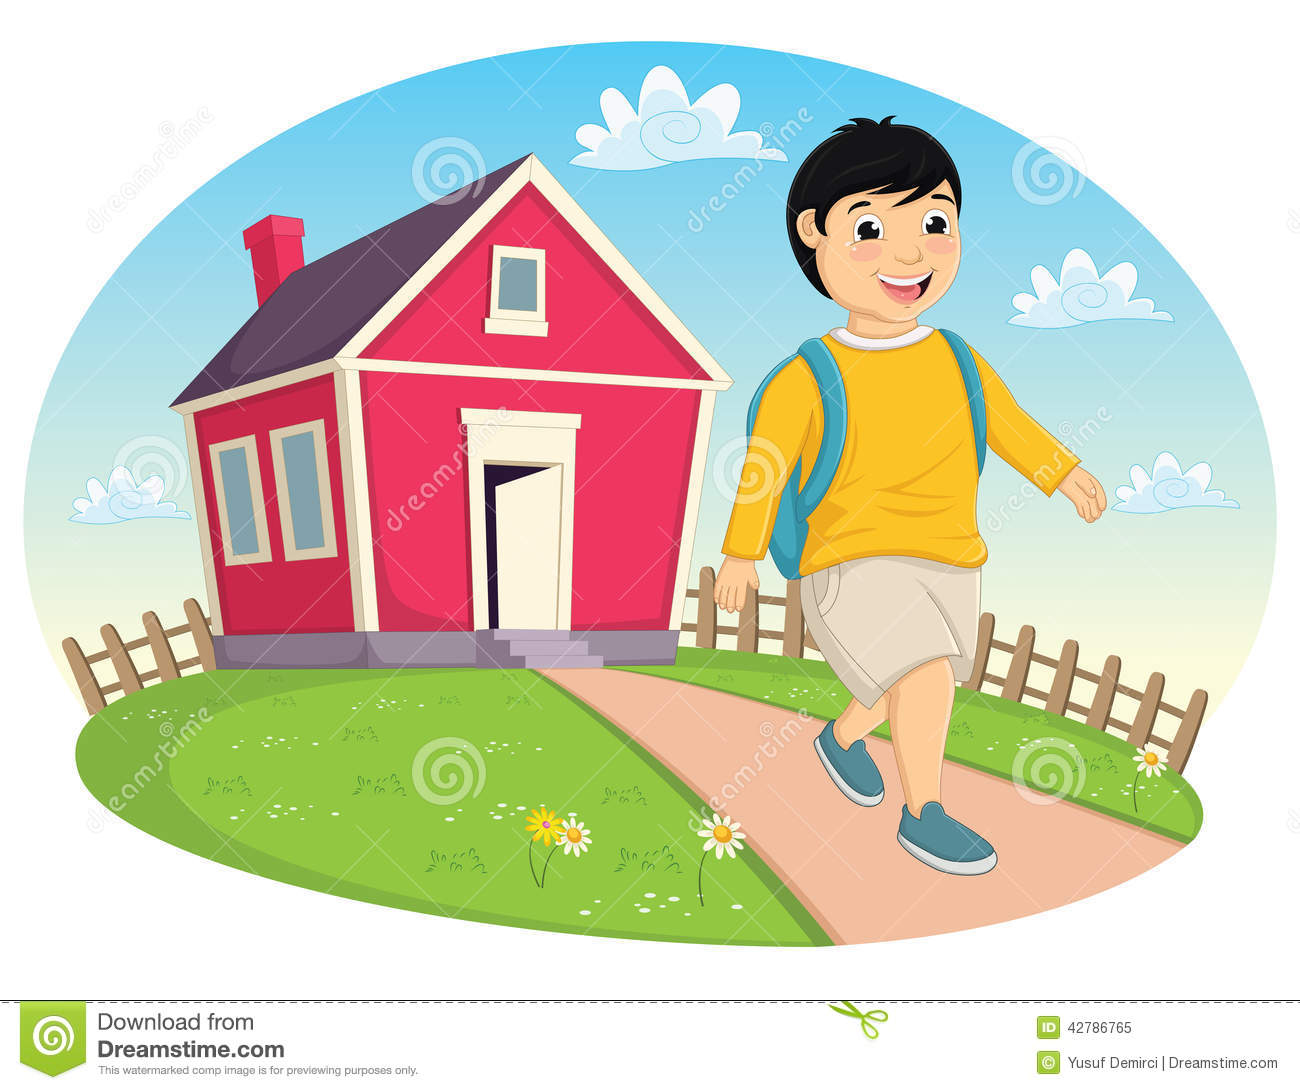 to leave the house clipart - Clipground